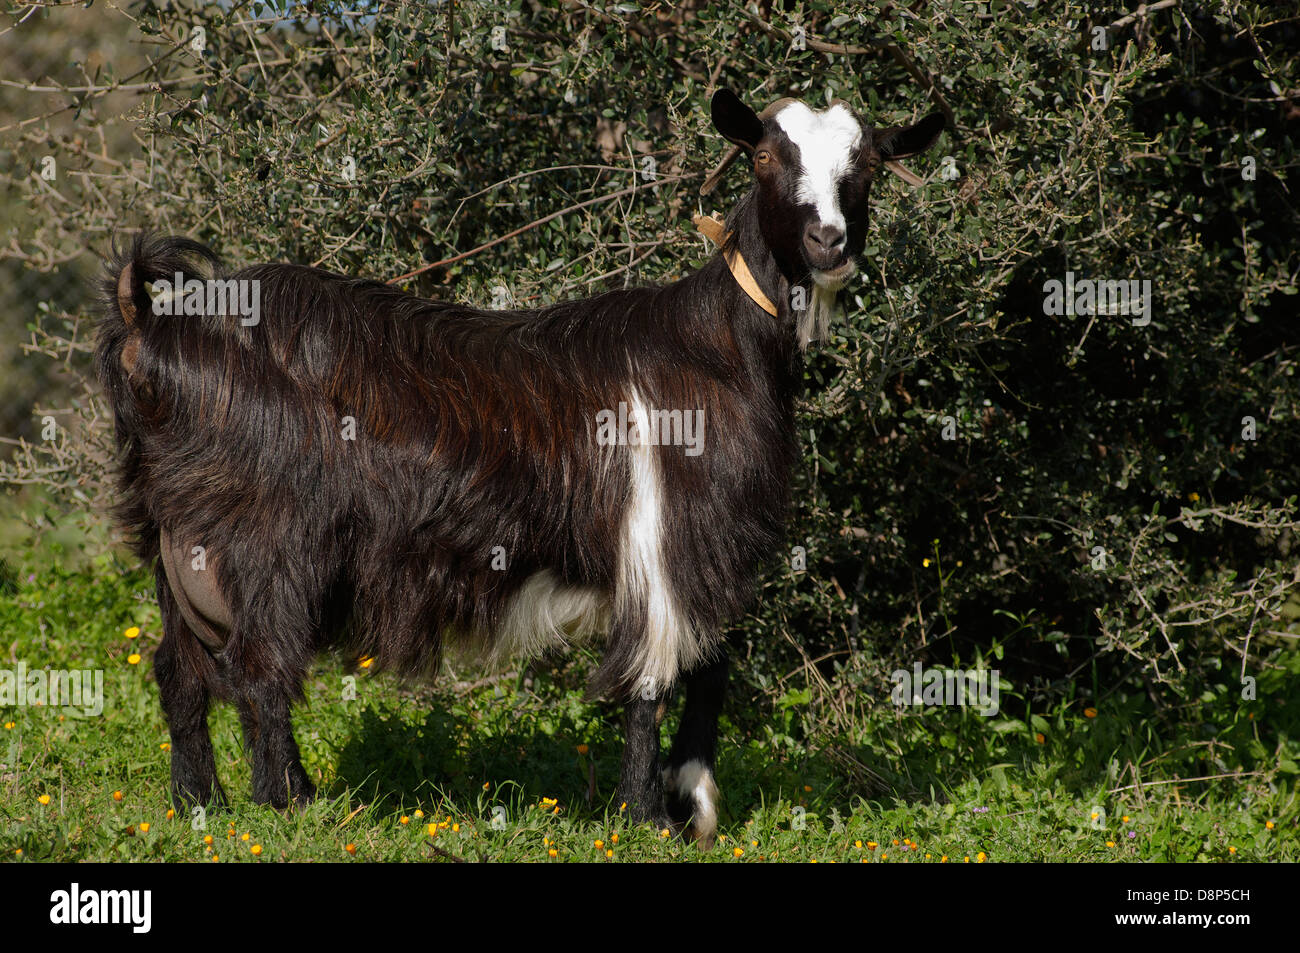 A black and white goat feeding on a bush (Greece) - Stock Image